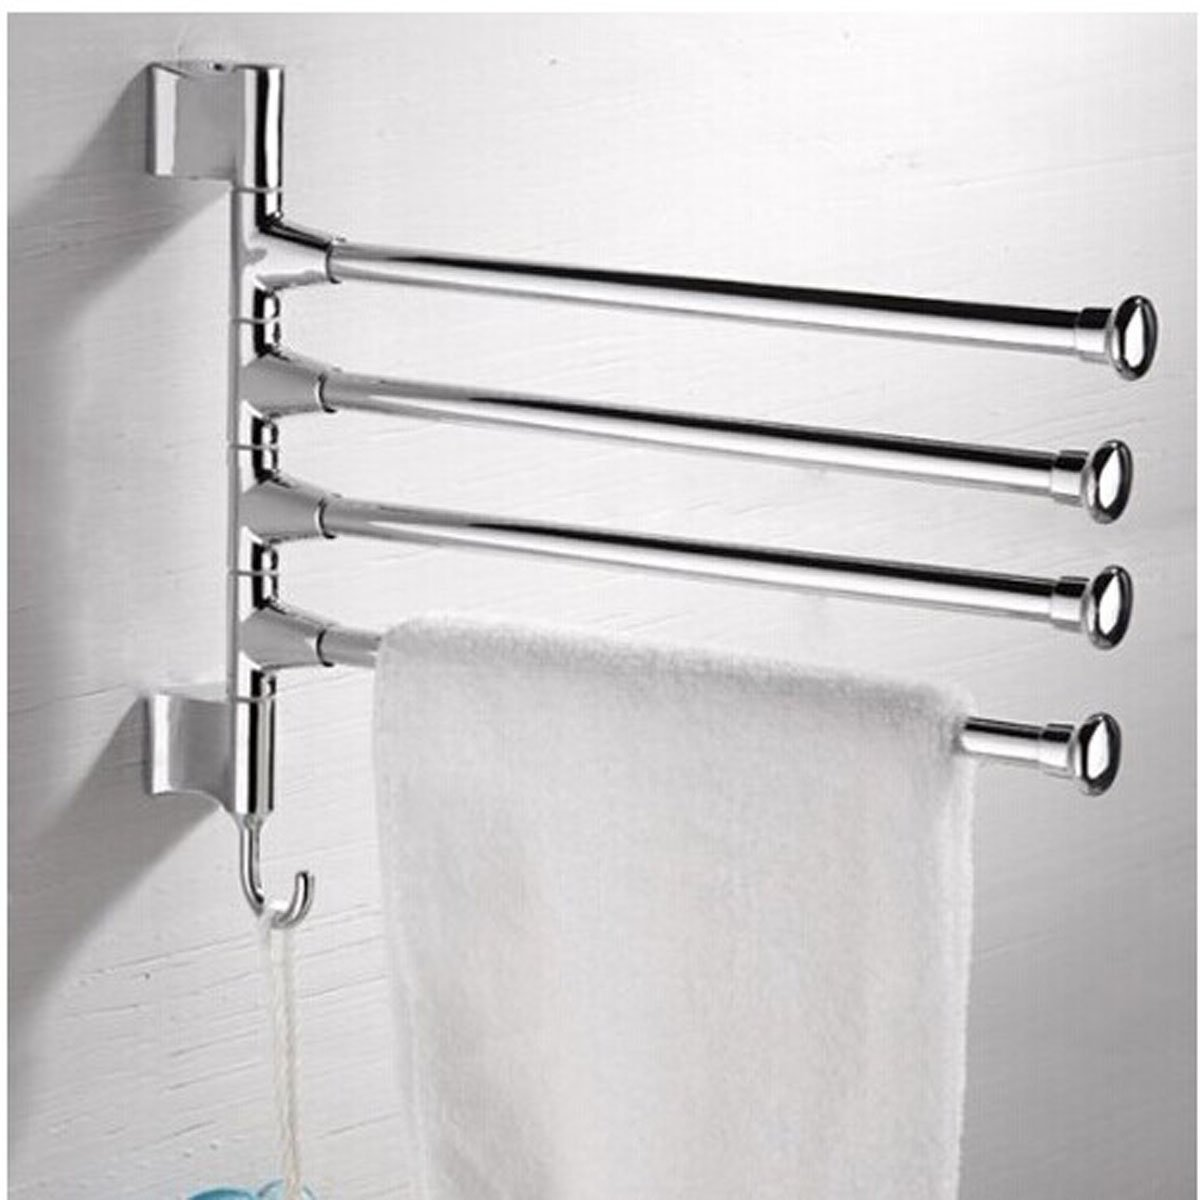 Wall Mounted Towel Rack PHOEWON Swivel Towel Rail Chrome Stainless